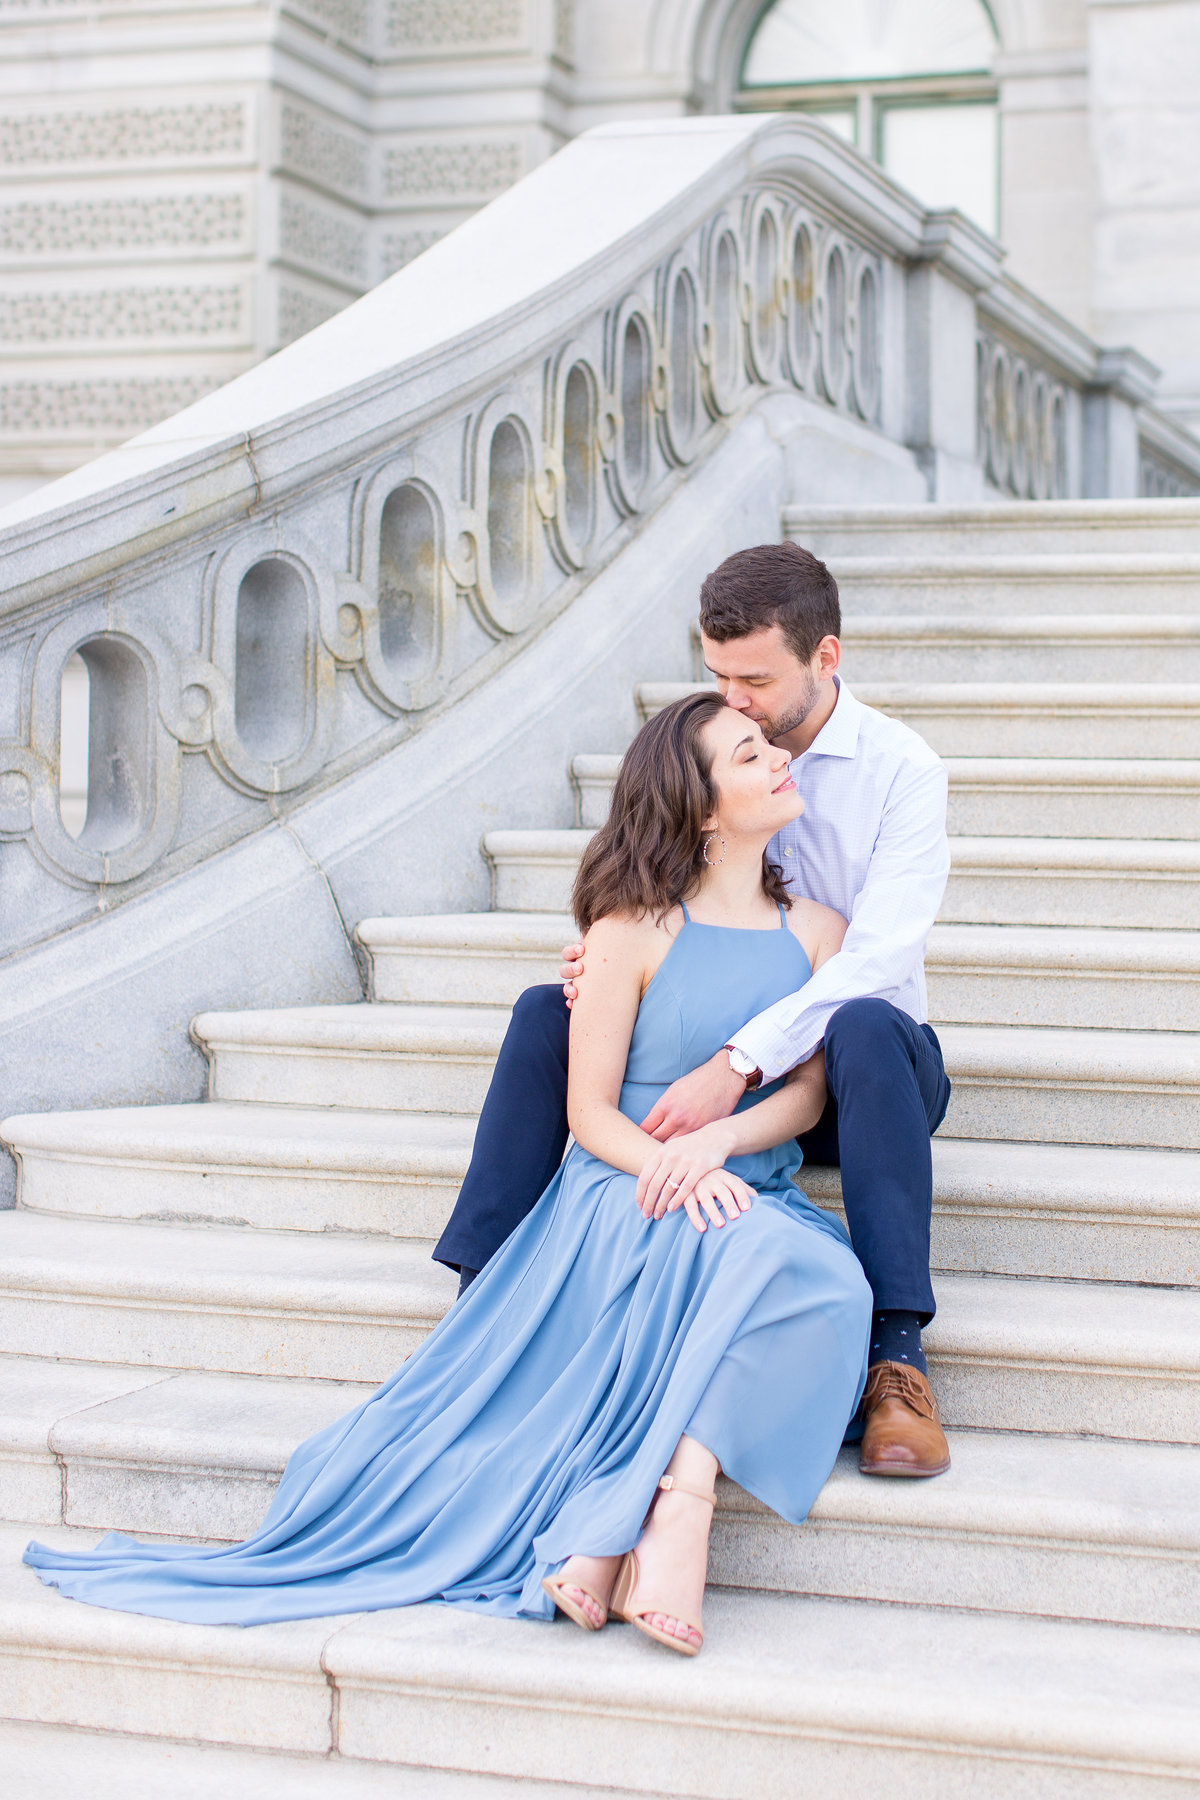 Capitol Building Engagement Session in DC with a visit to Supreme Court Building and Library of Congress | DC Wedding Photographer | Taylor Rose Photography-84